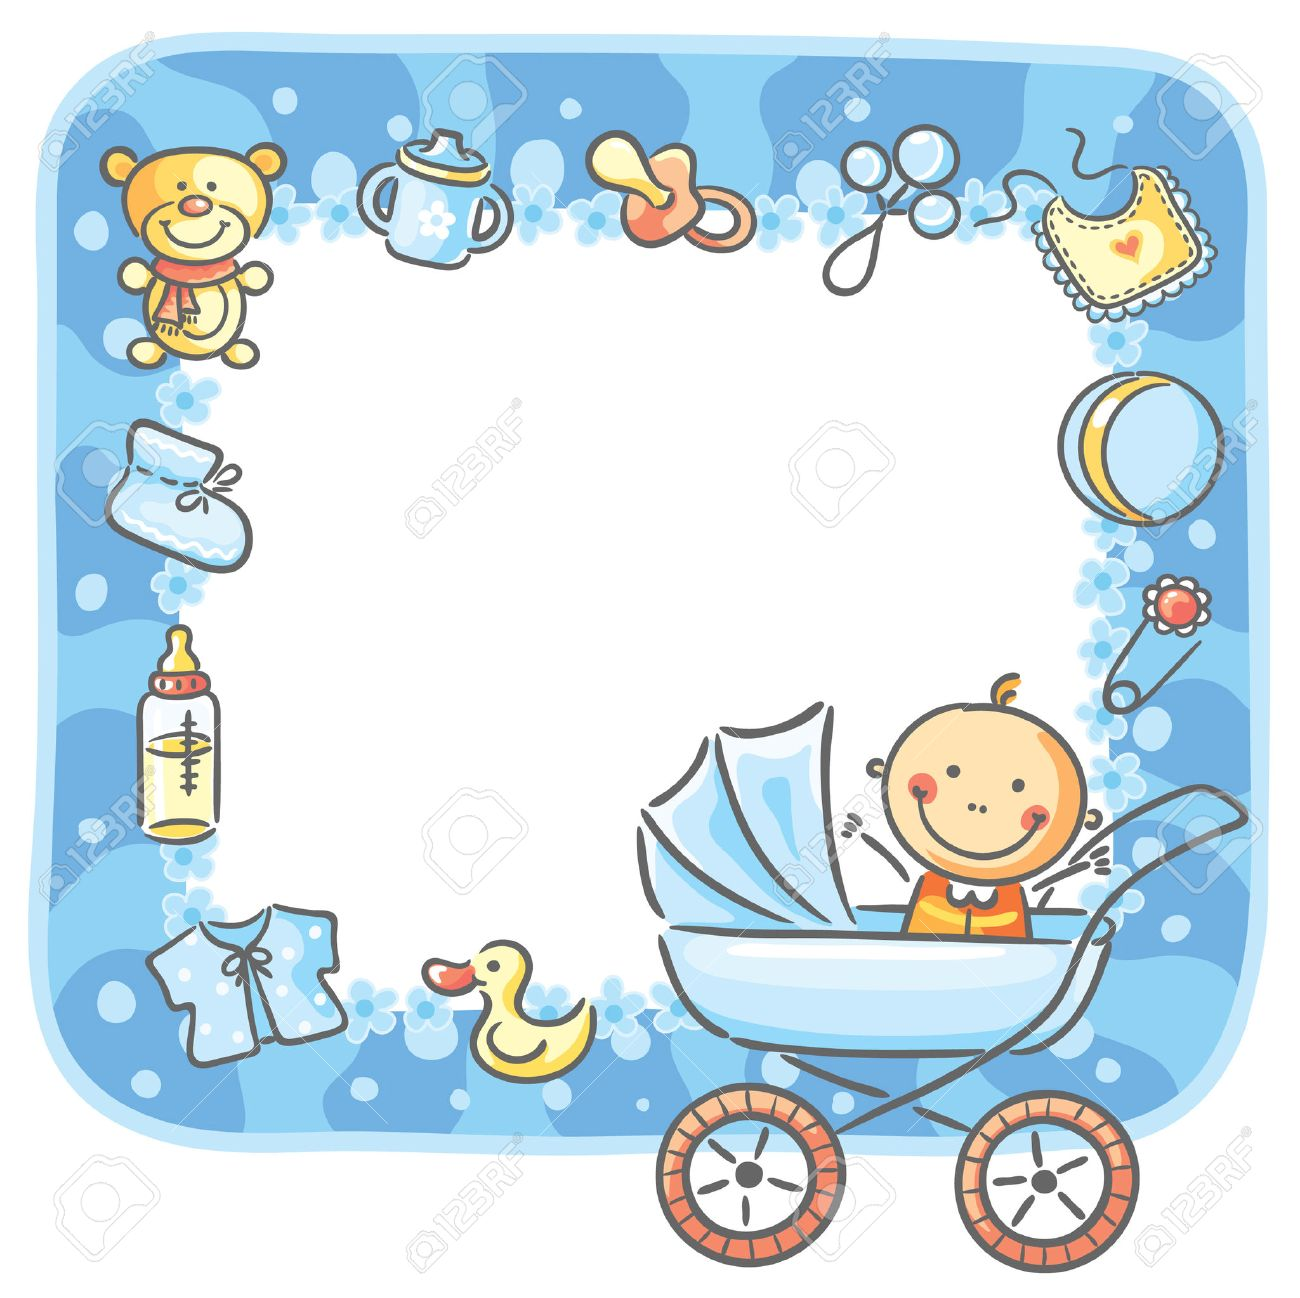 Baby Clip Art Borders And Frames.